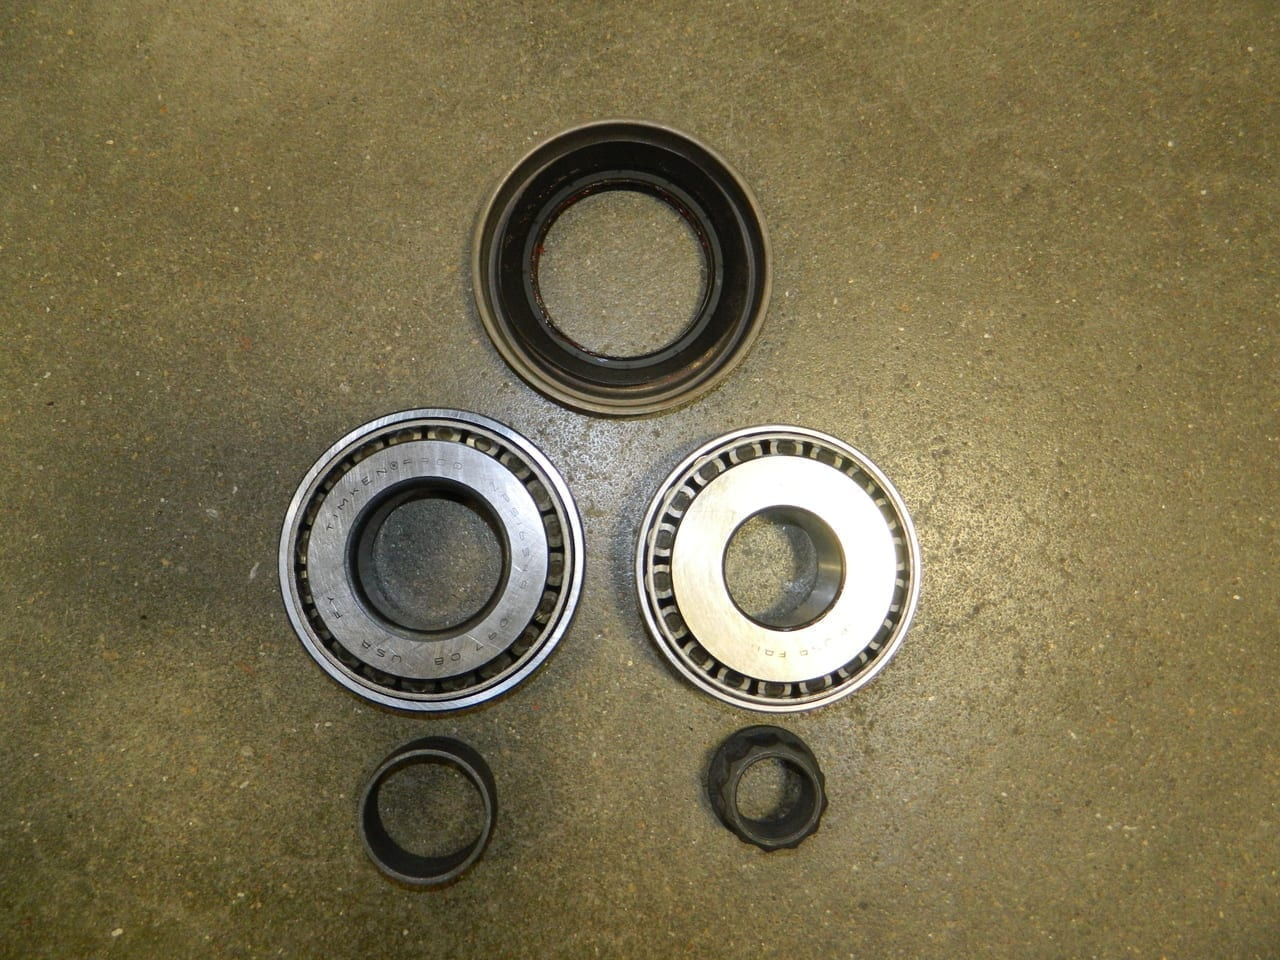 2014+ Dodge Ram 2500 Special Pinion Bearing Kit Used to Convert Earlier Ring & Pinion